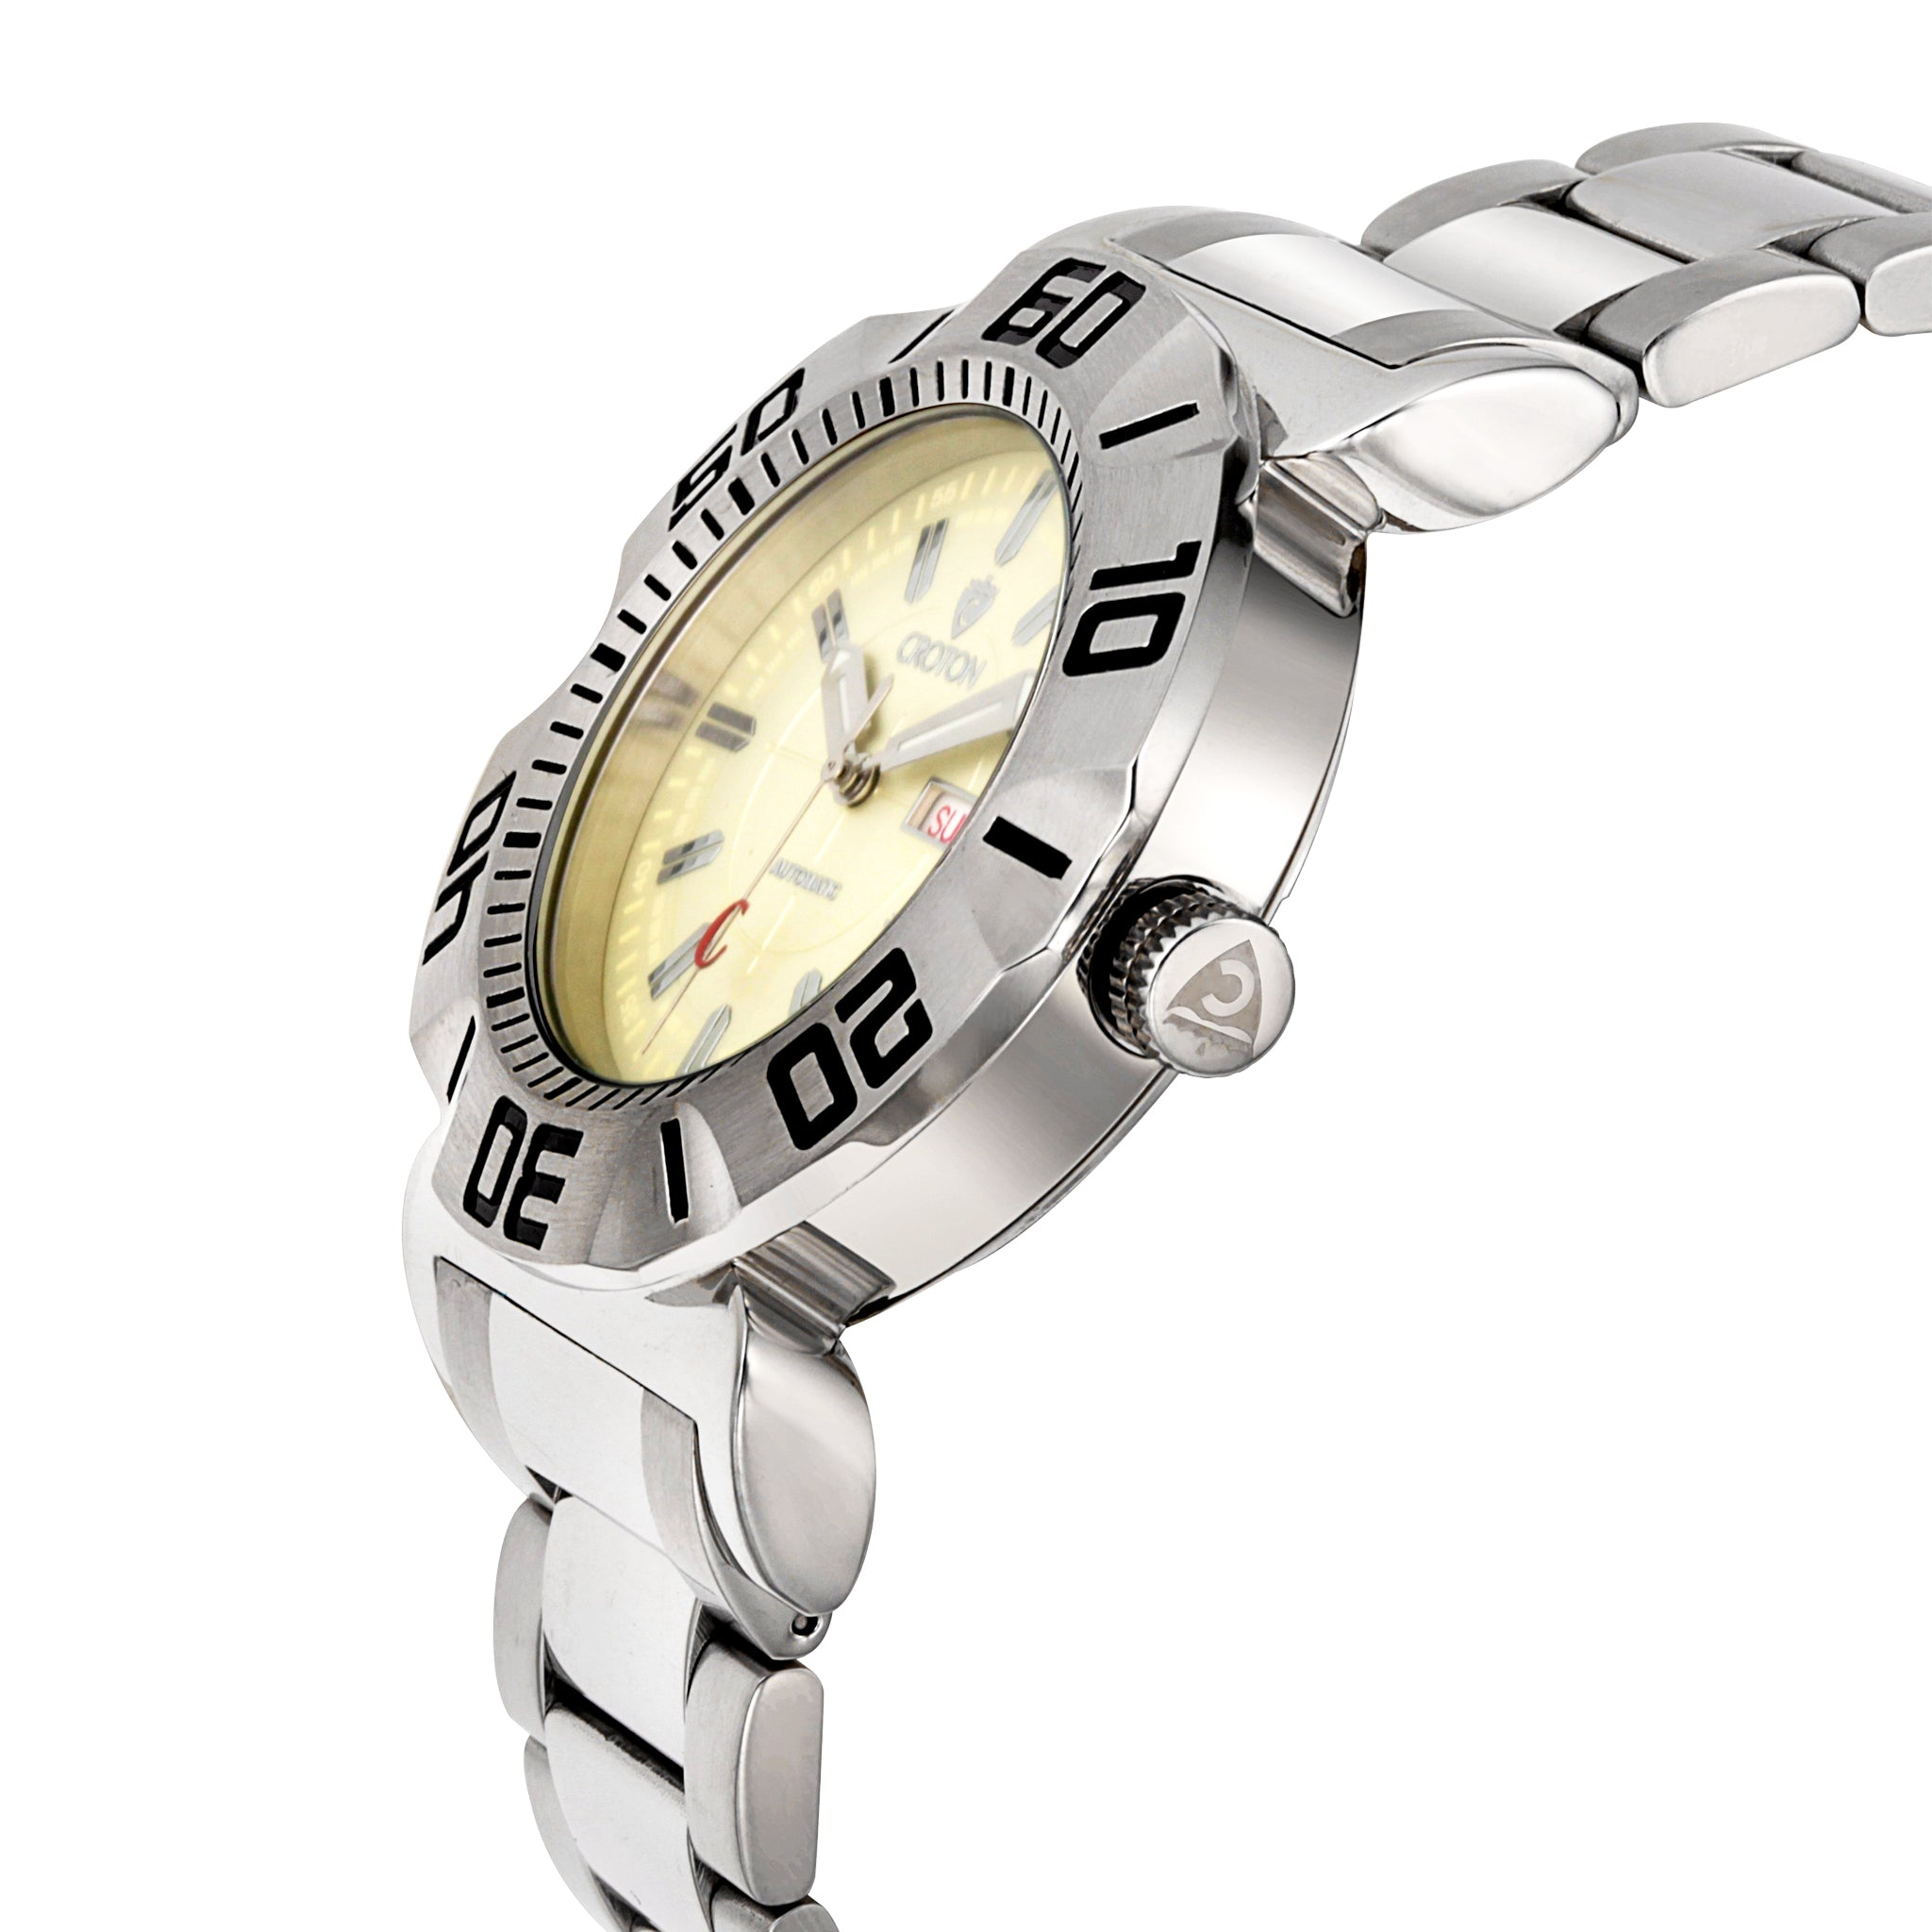 baum watch bracelet mercier expertissim baume gold watches